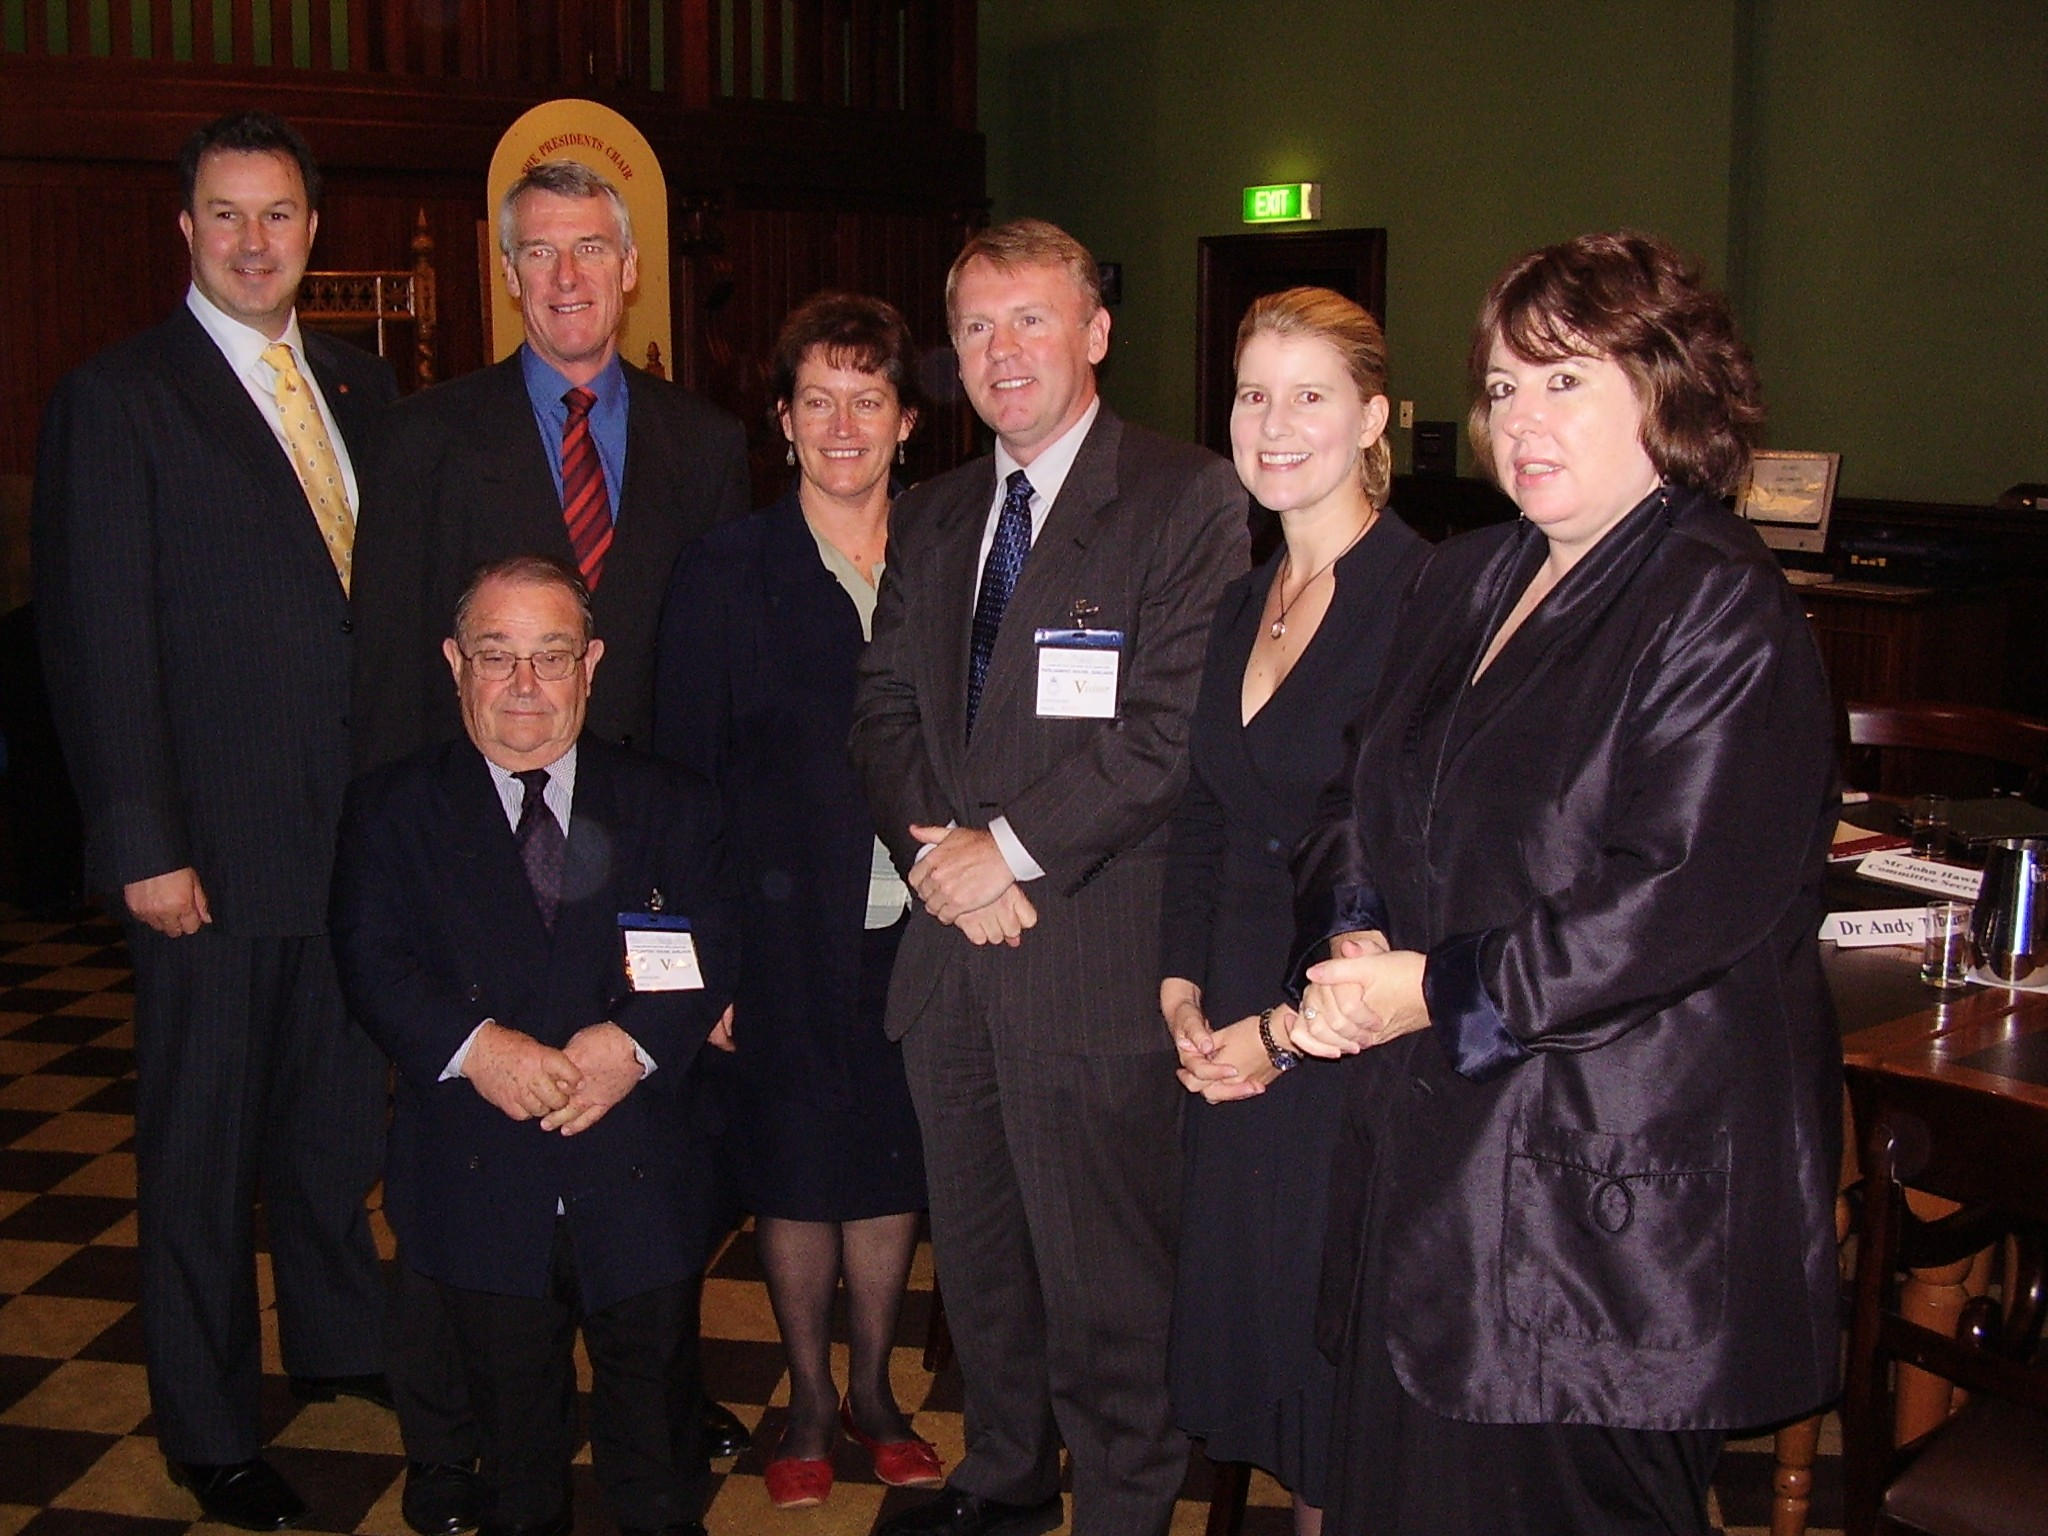 Standing Committee on Economics with aerospace engineer and former NASA astronaut Dr Andy Thomas, Adelaide, 23 May 2008. L-R: Senators David Bushby, Alan Eggleston, Grant Chapman and Annette Hurley [Chair], Dr Thomas, Senators Natasha Stott Despoja and Ruth Webber.